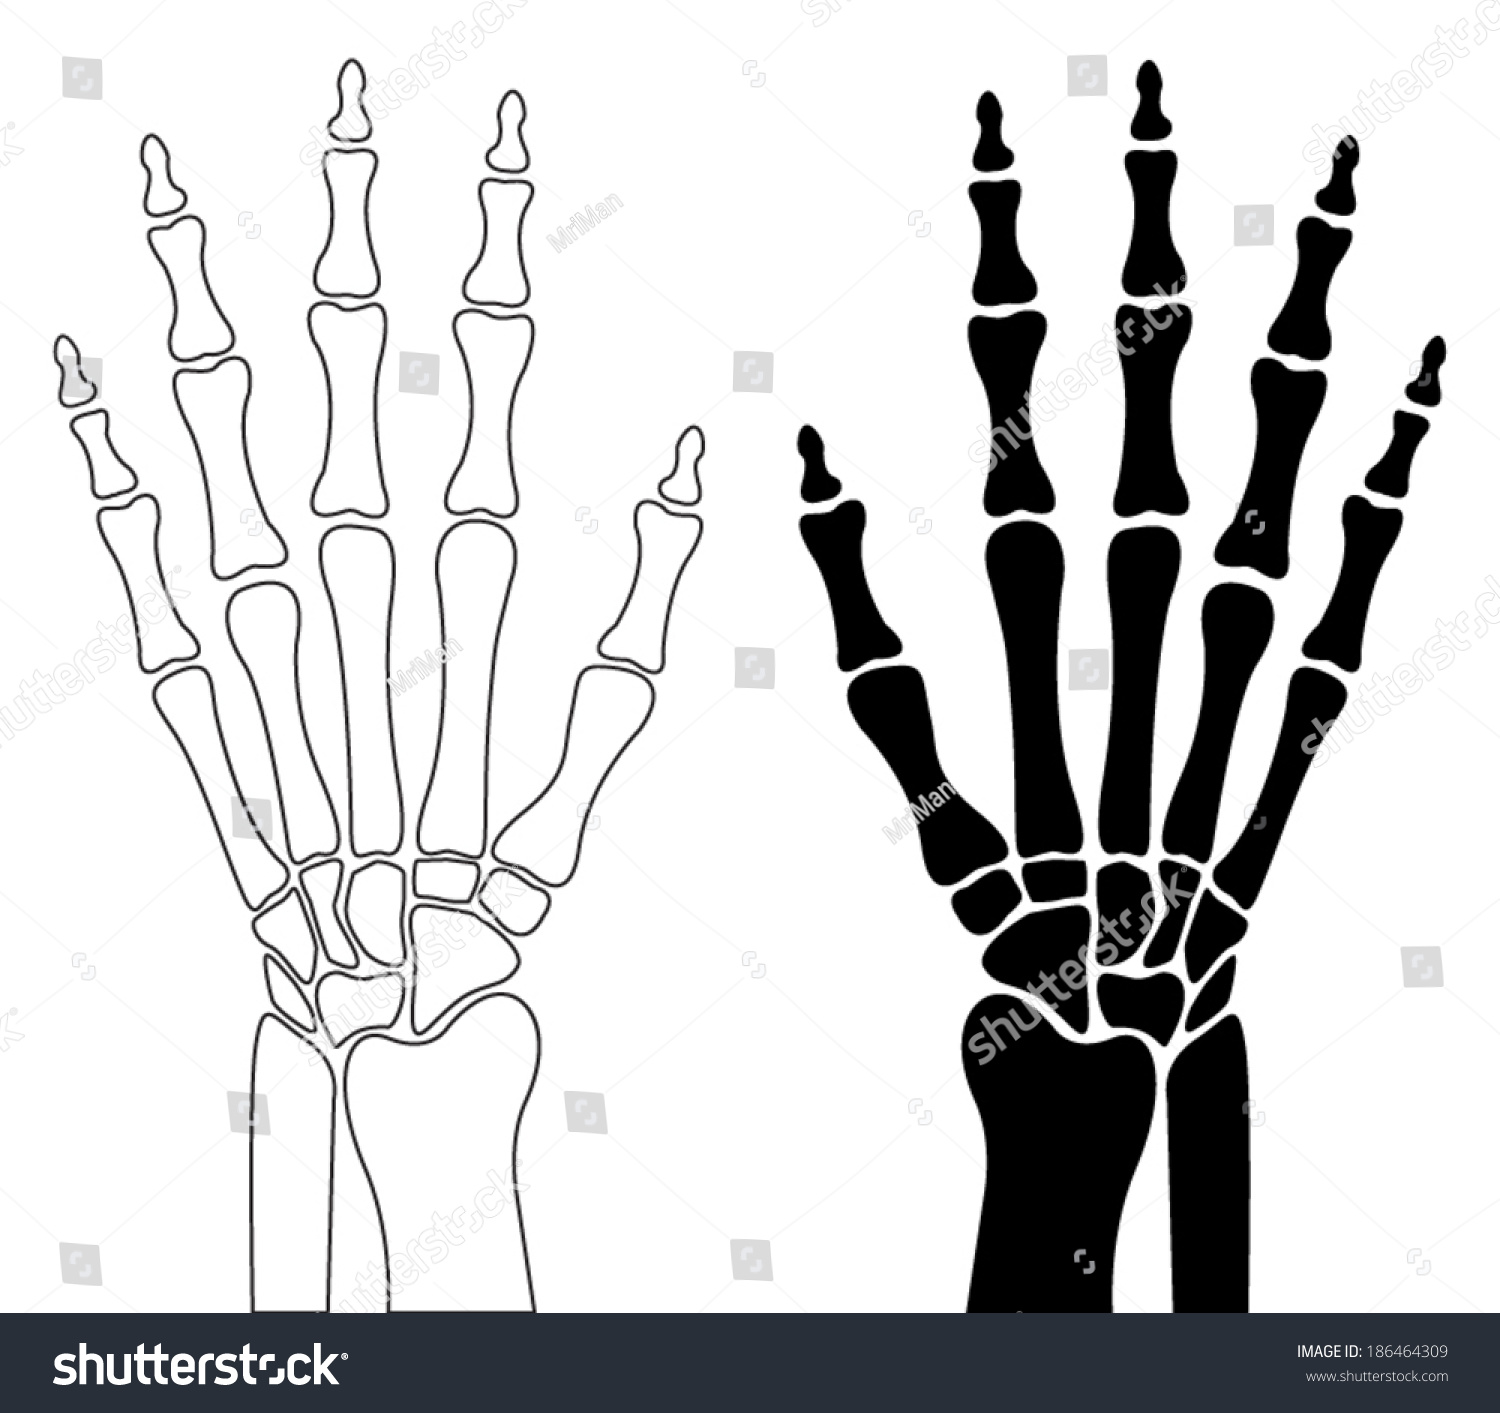 wrist and hand unlabeled diagram wiring for century electric motor skeleton of human carpal bones metacarpals phalanges graphic design element placard anatomical or medical book detailed flat vector icon